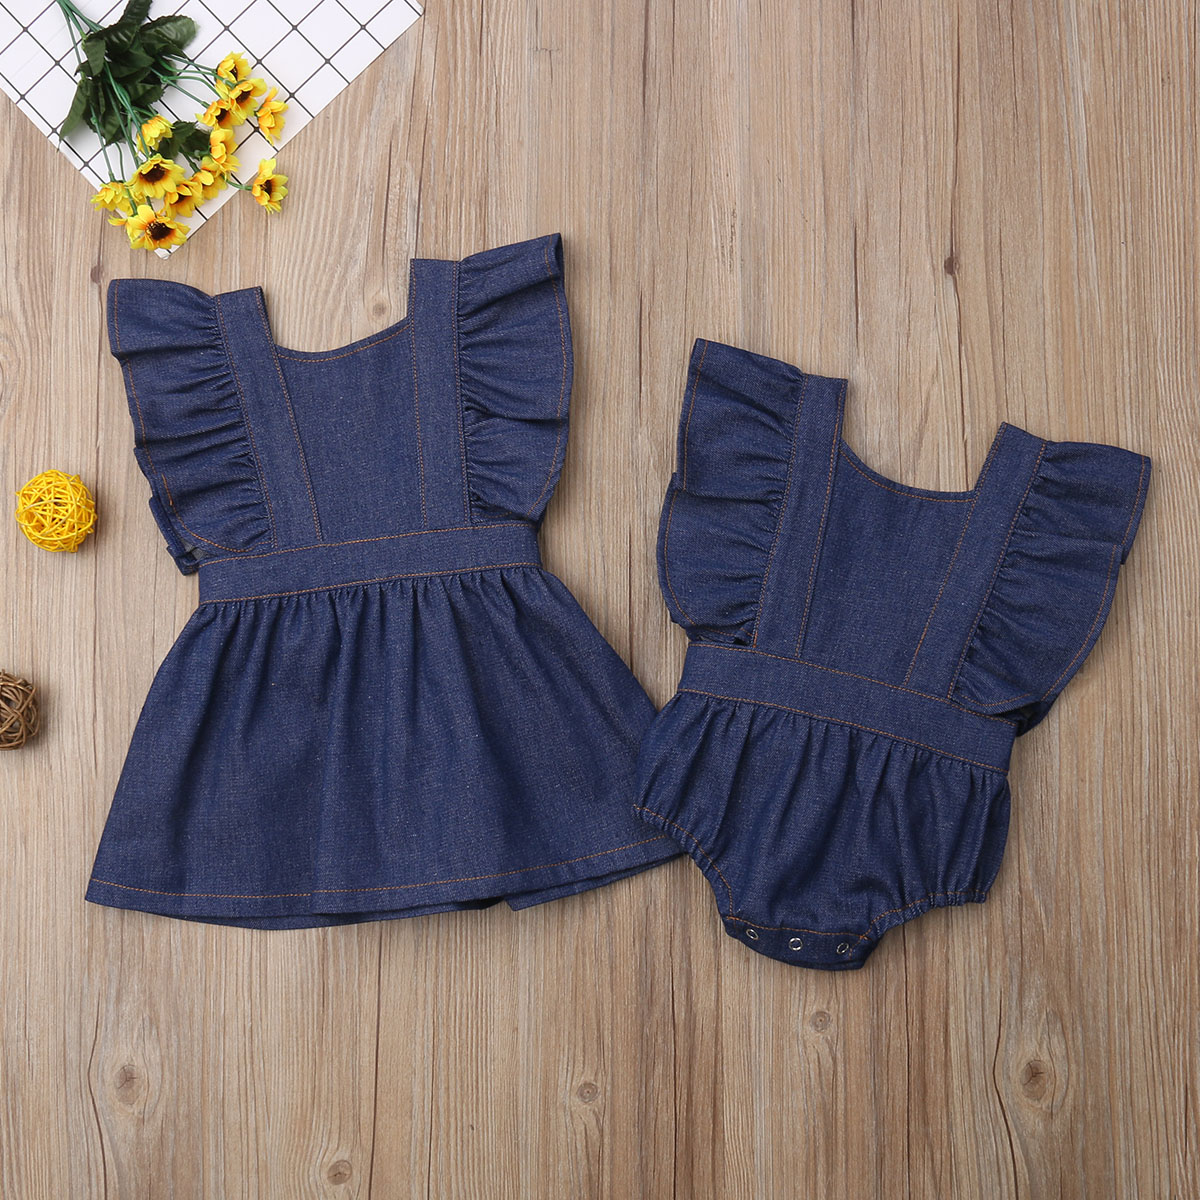 Toddler Kids Baby Girls Clothes Dresses Matching Denim Backless Casual Jumpsuit Romper Dress Clothing Girl 0-5TToddler Kids Baby Girls Clothes Dresses Matching Denim Backless Casual Jumpsuit Romper Dress Clothing Girl 0-5T